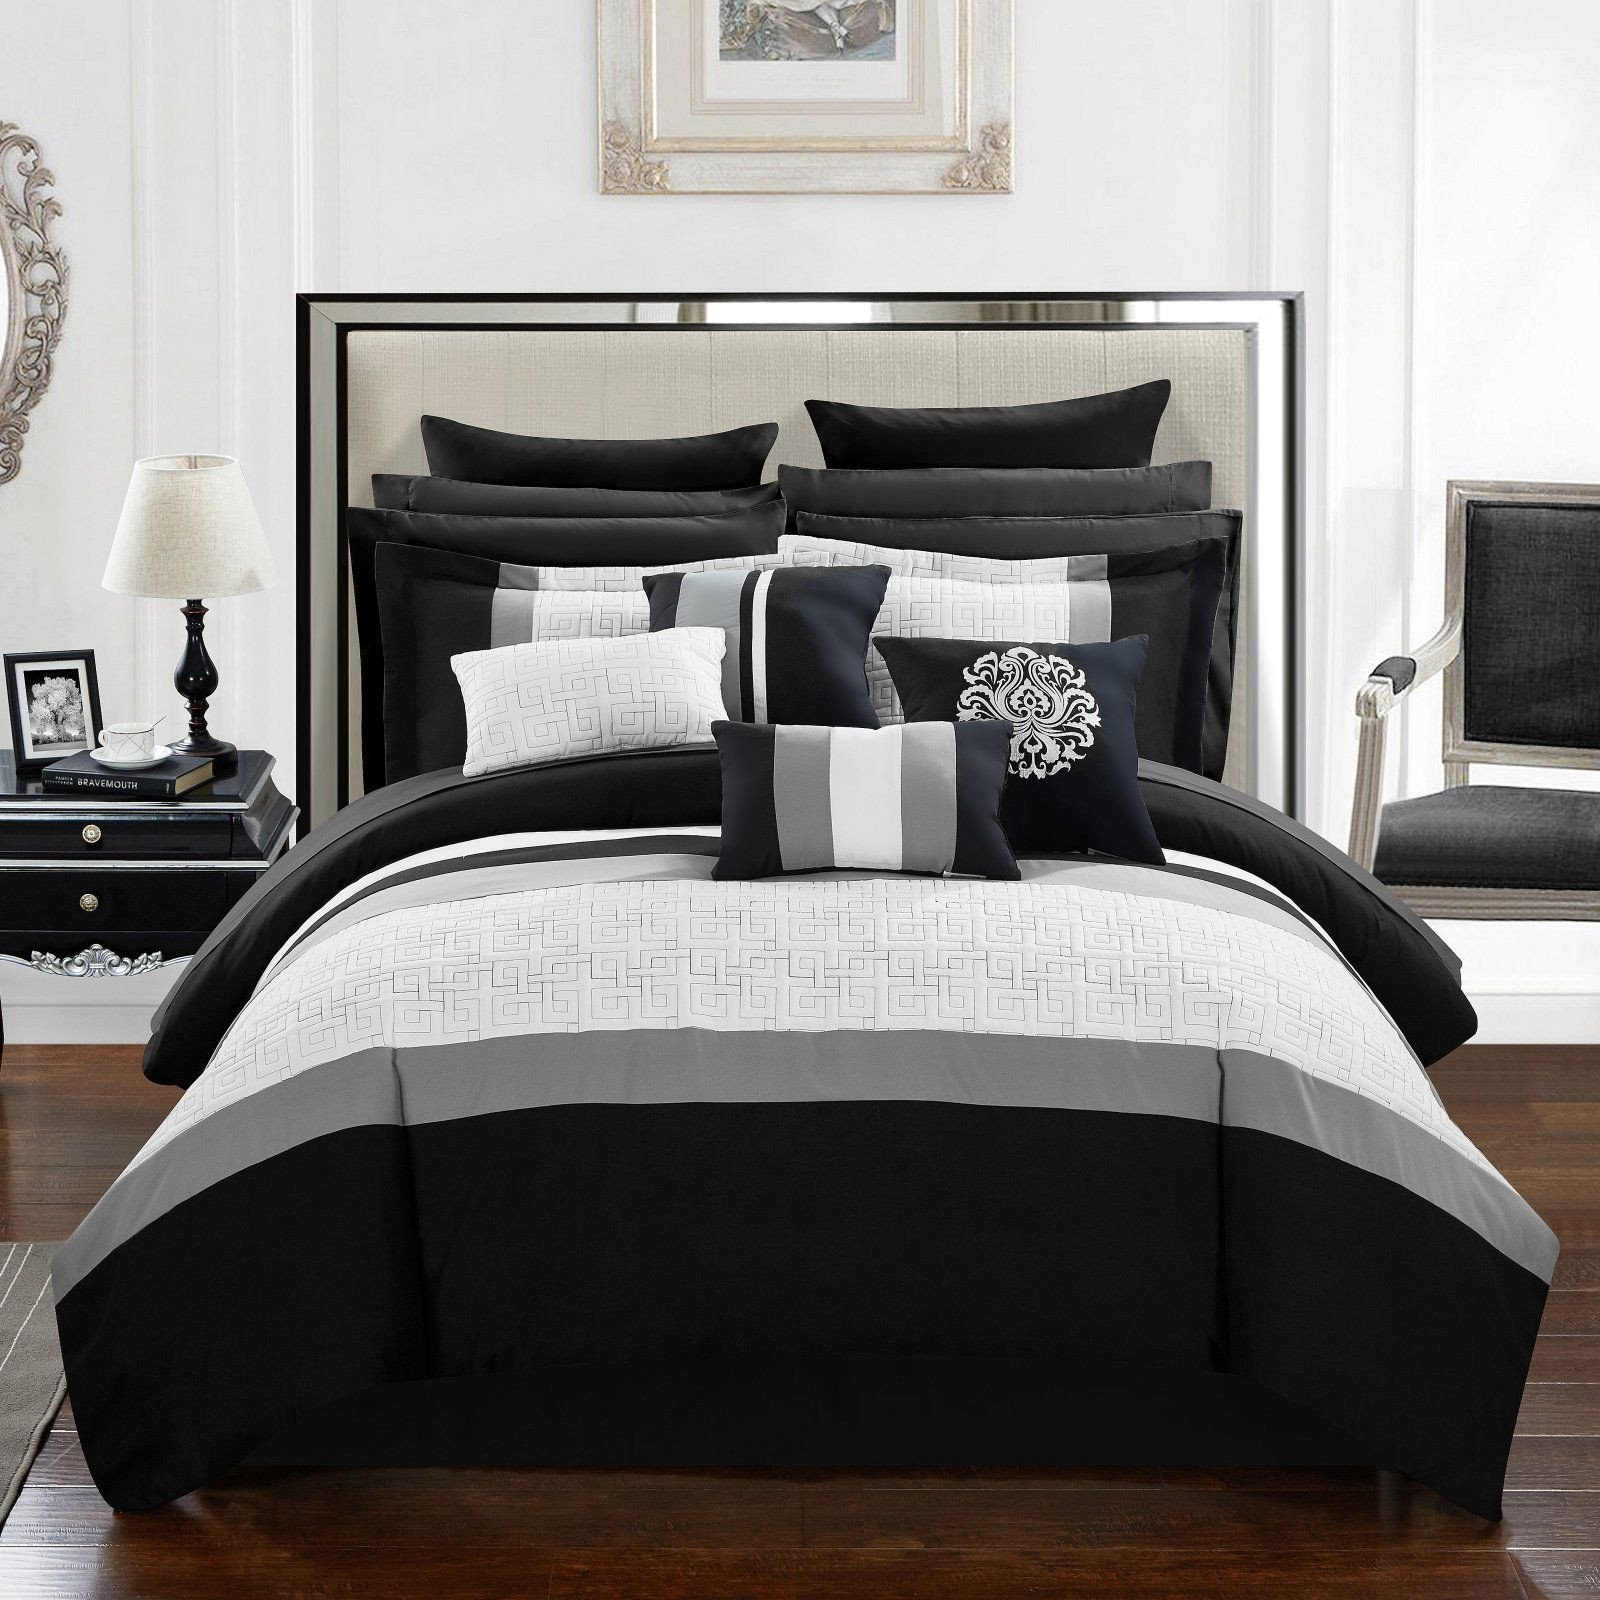 Black Bedroom Comforter Set Inspirational Keira 16 Piece Bed In A Bag Queen forter Set by Chic Home